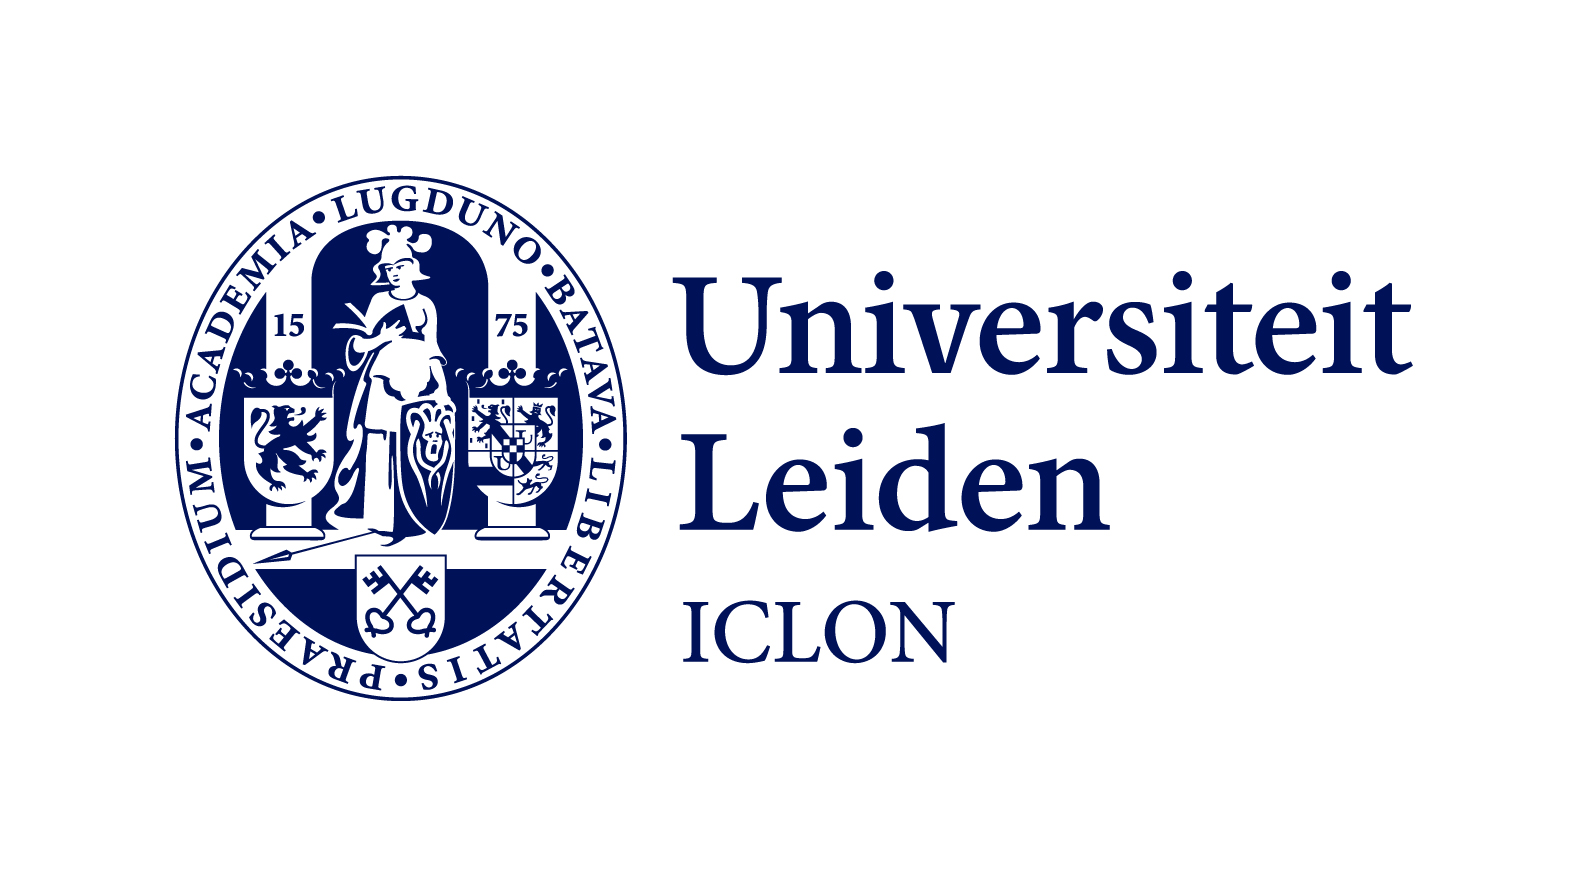 Universiteit Leiden, ICLON